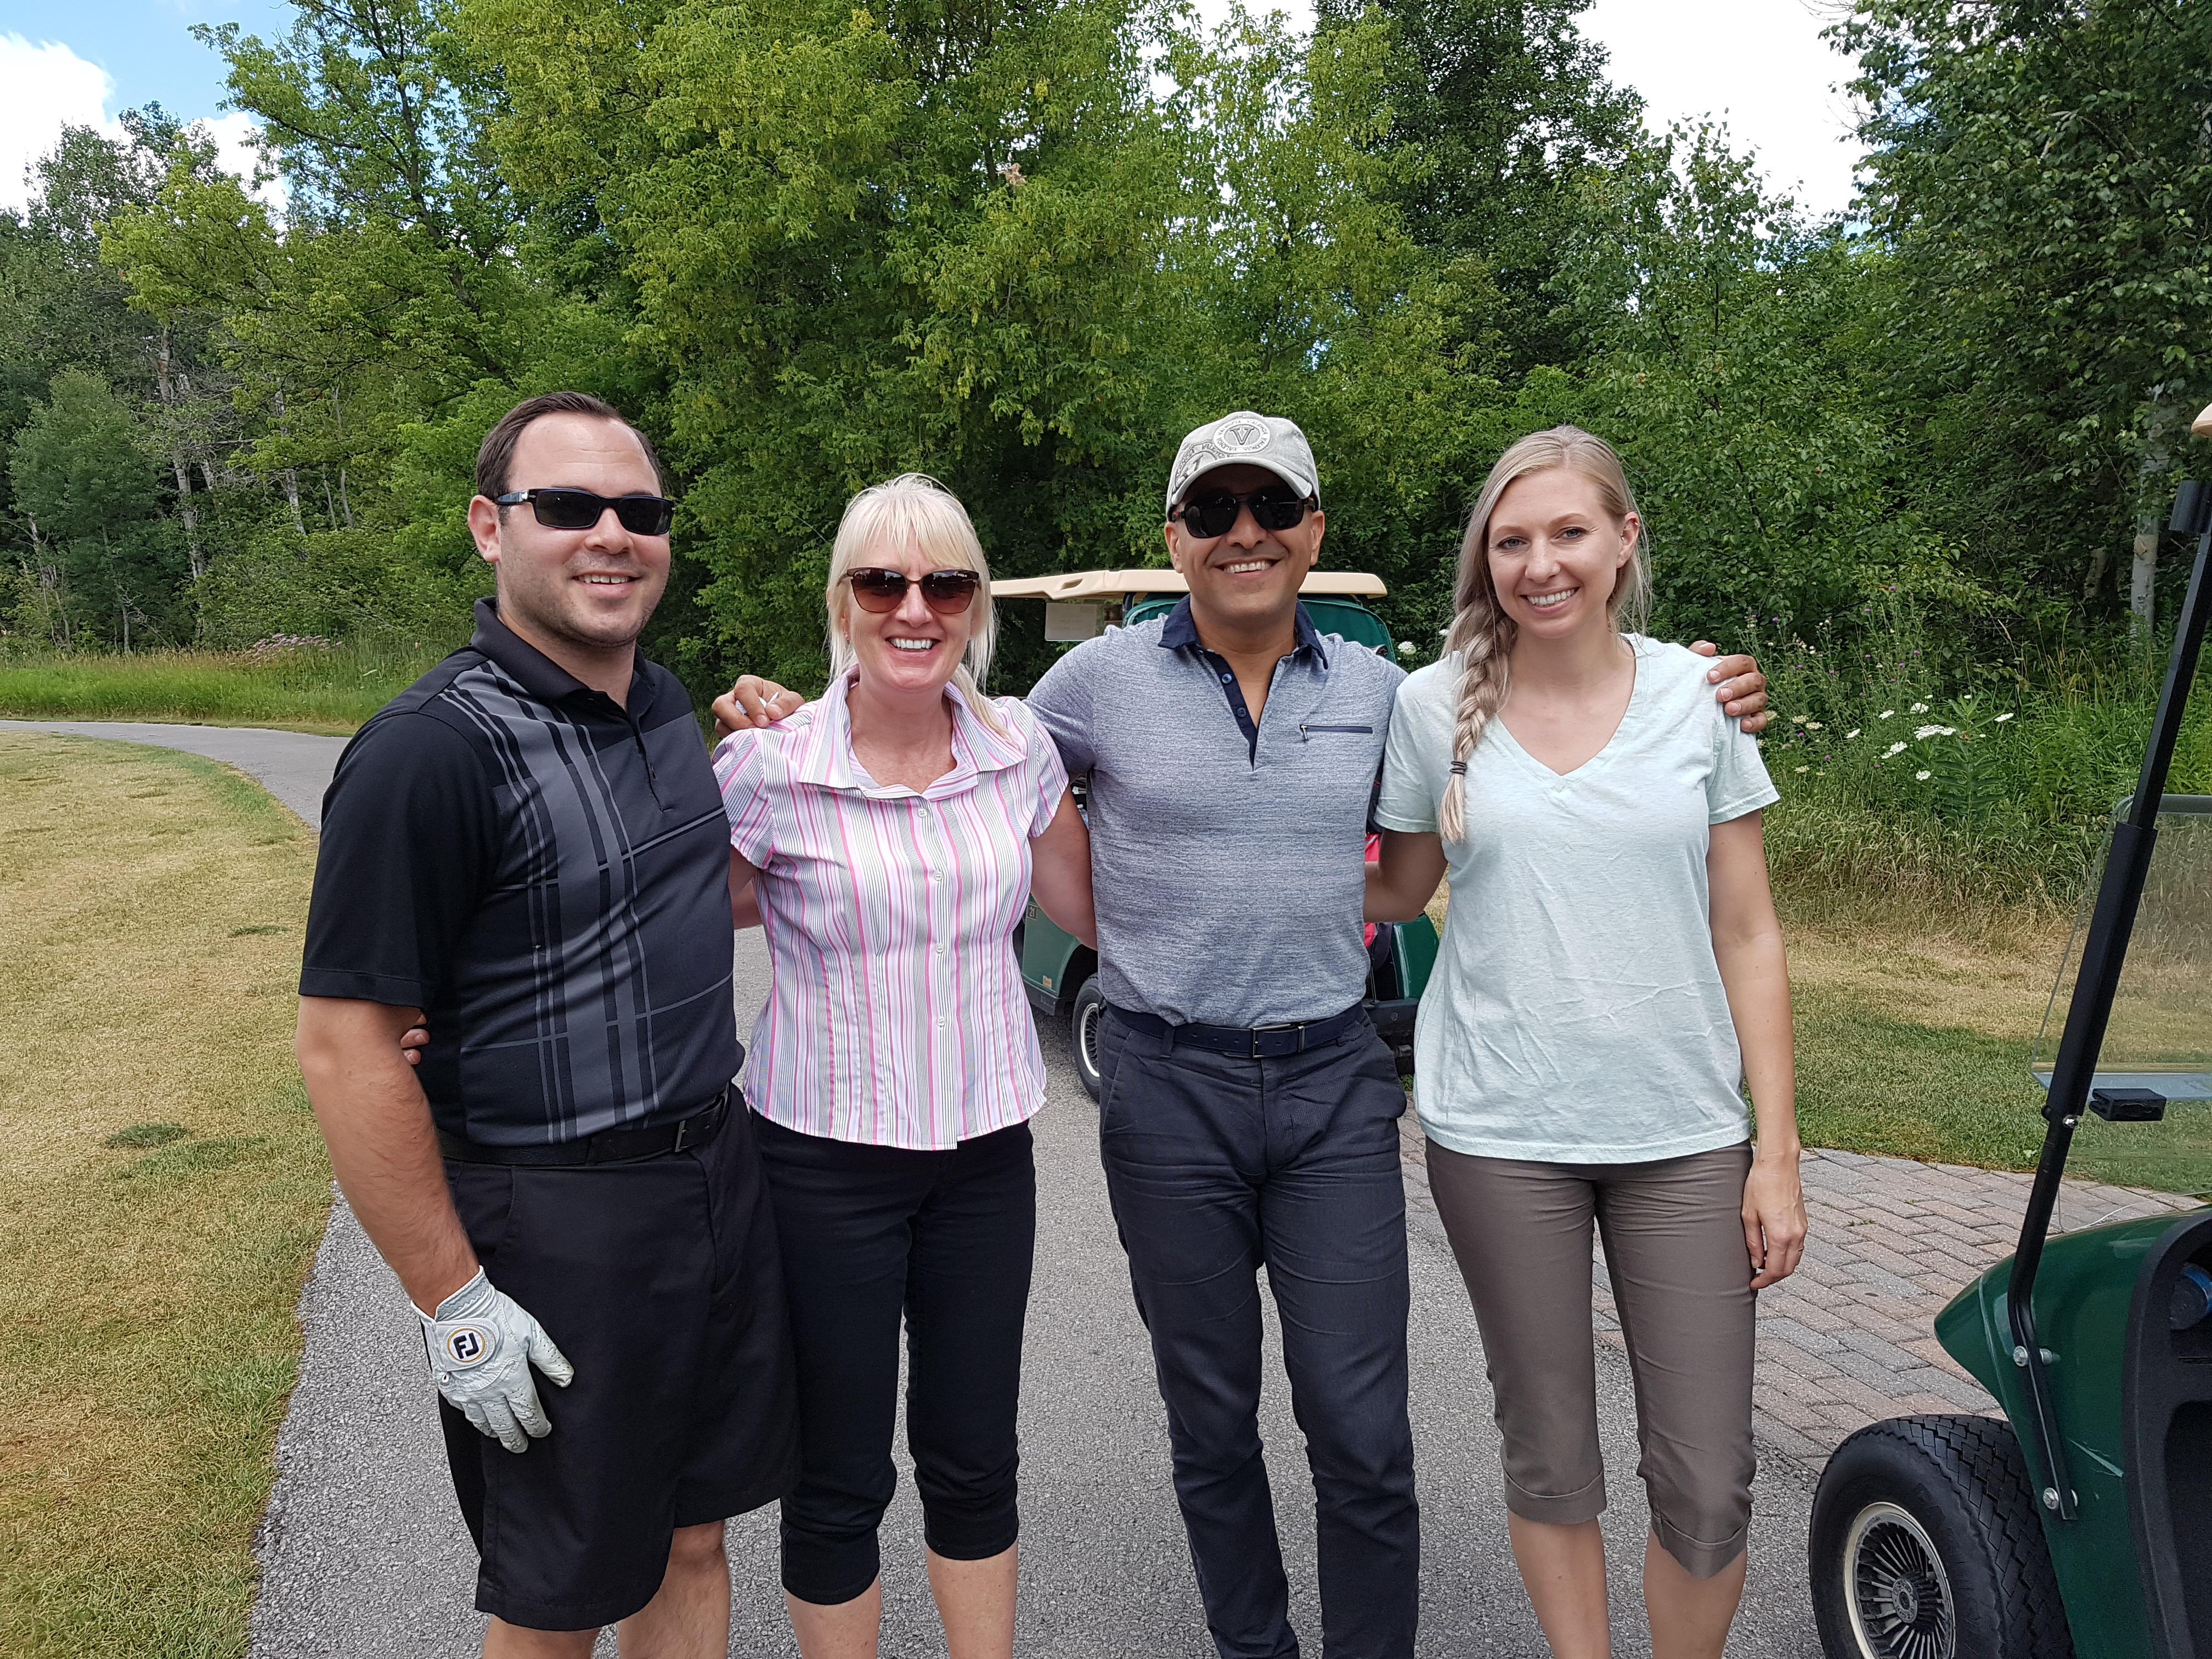 A group of four smiling people on a golf course